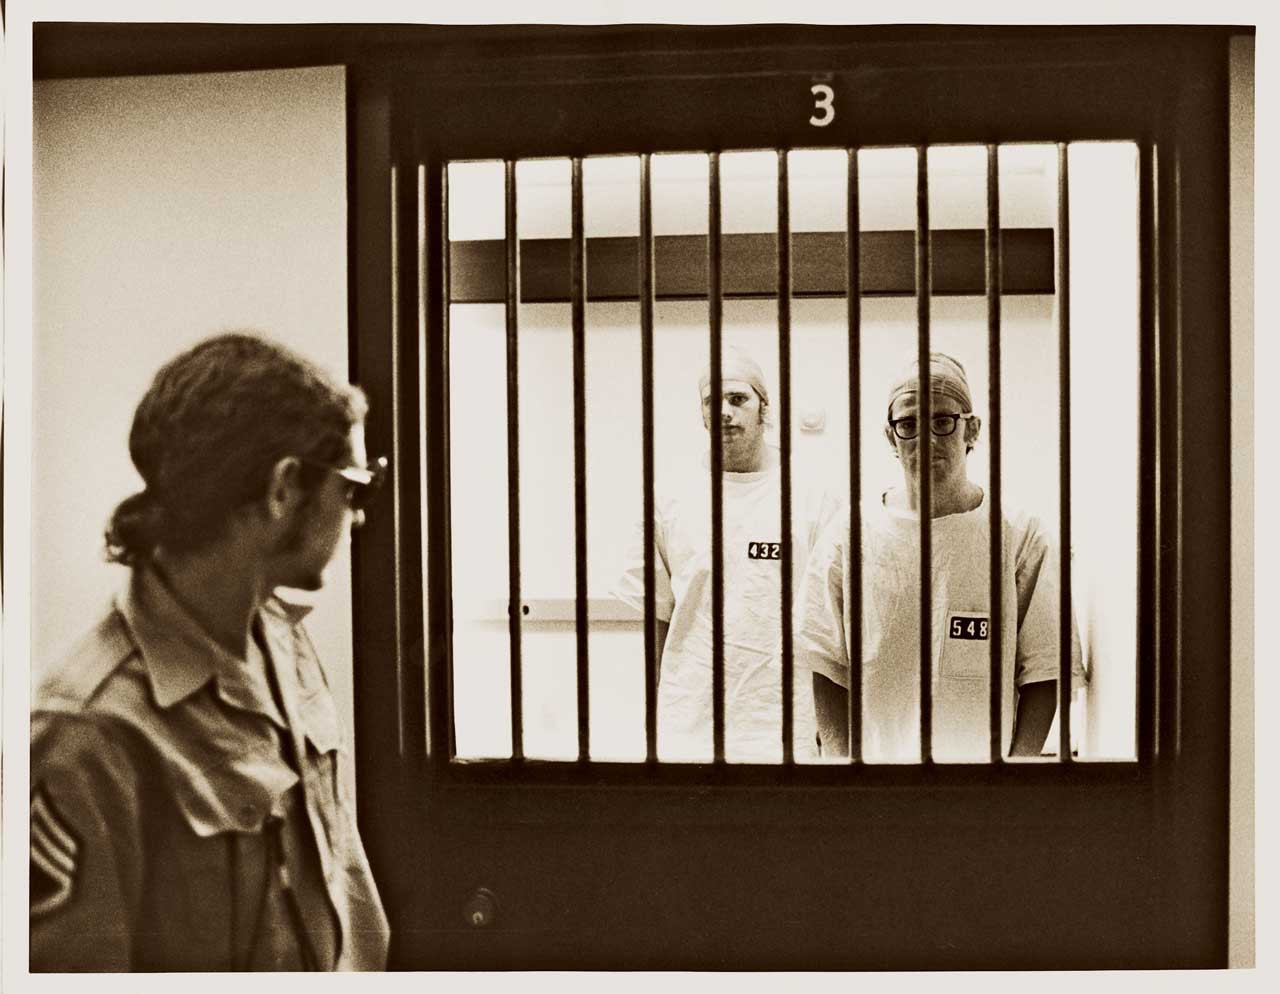 the psychological effects of the zimbardo prison experiment The stanford prison experiment (spe) was a study of the psychological effects of becoming a prisoner or prison guard the experiment was conducted at stanfor.